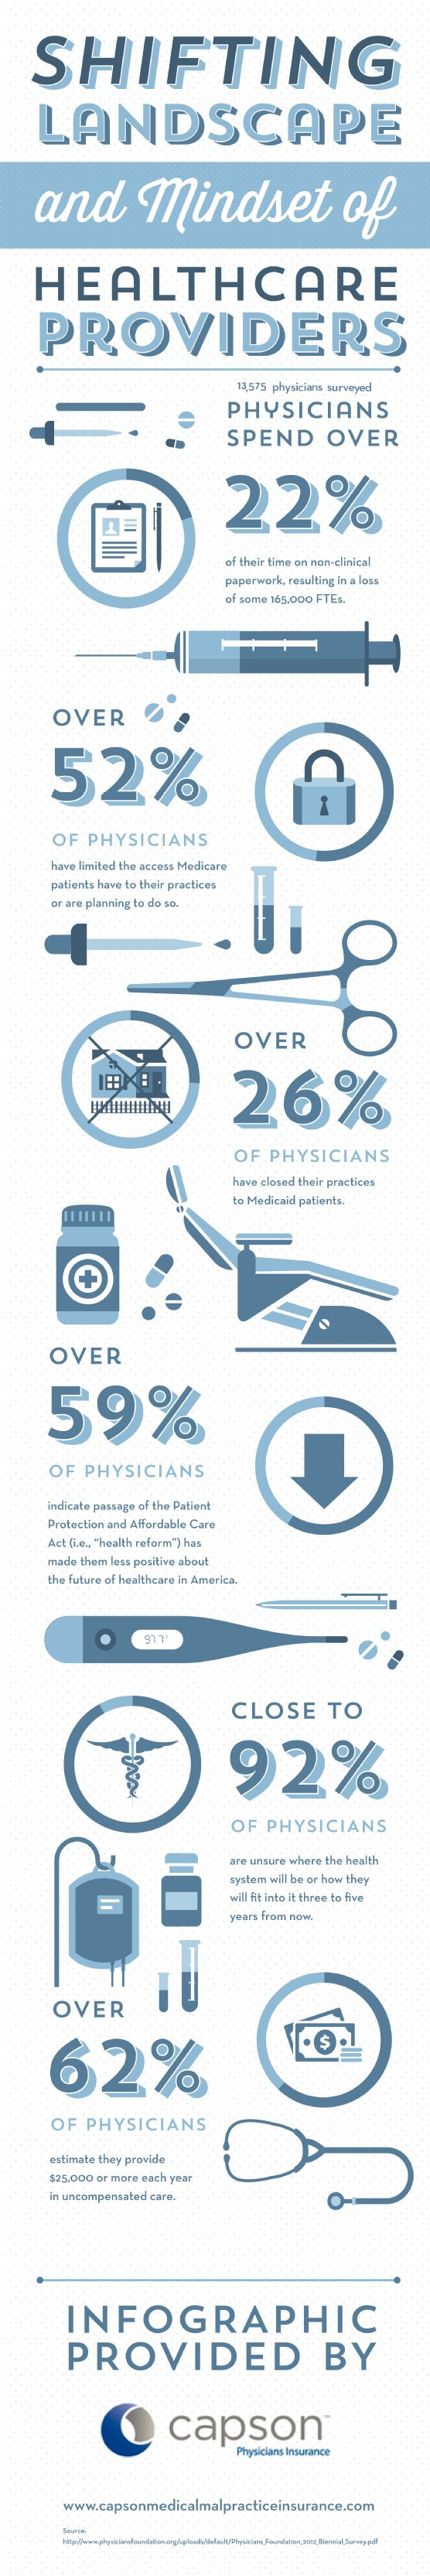 Shifting Landscape and Mindset of Healthcare Providers   New Visions Healthcare Blog - www.healthcoverageally.com